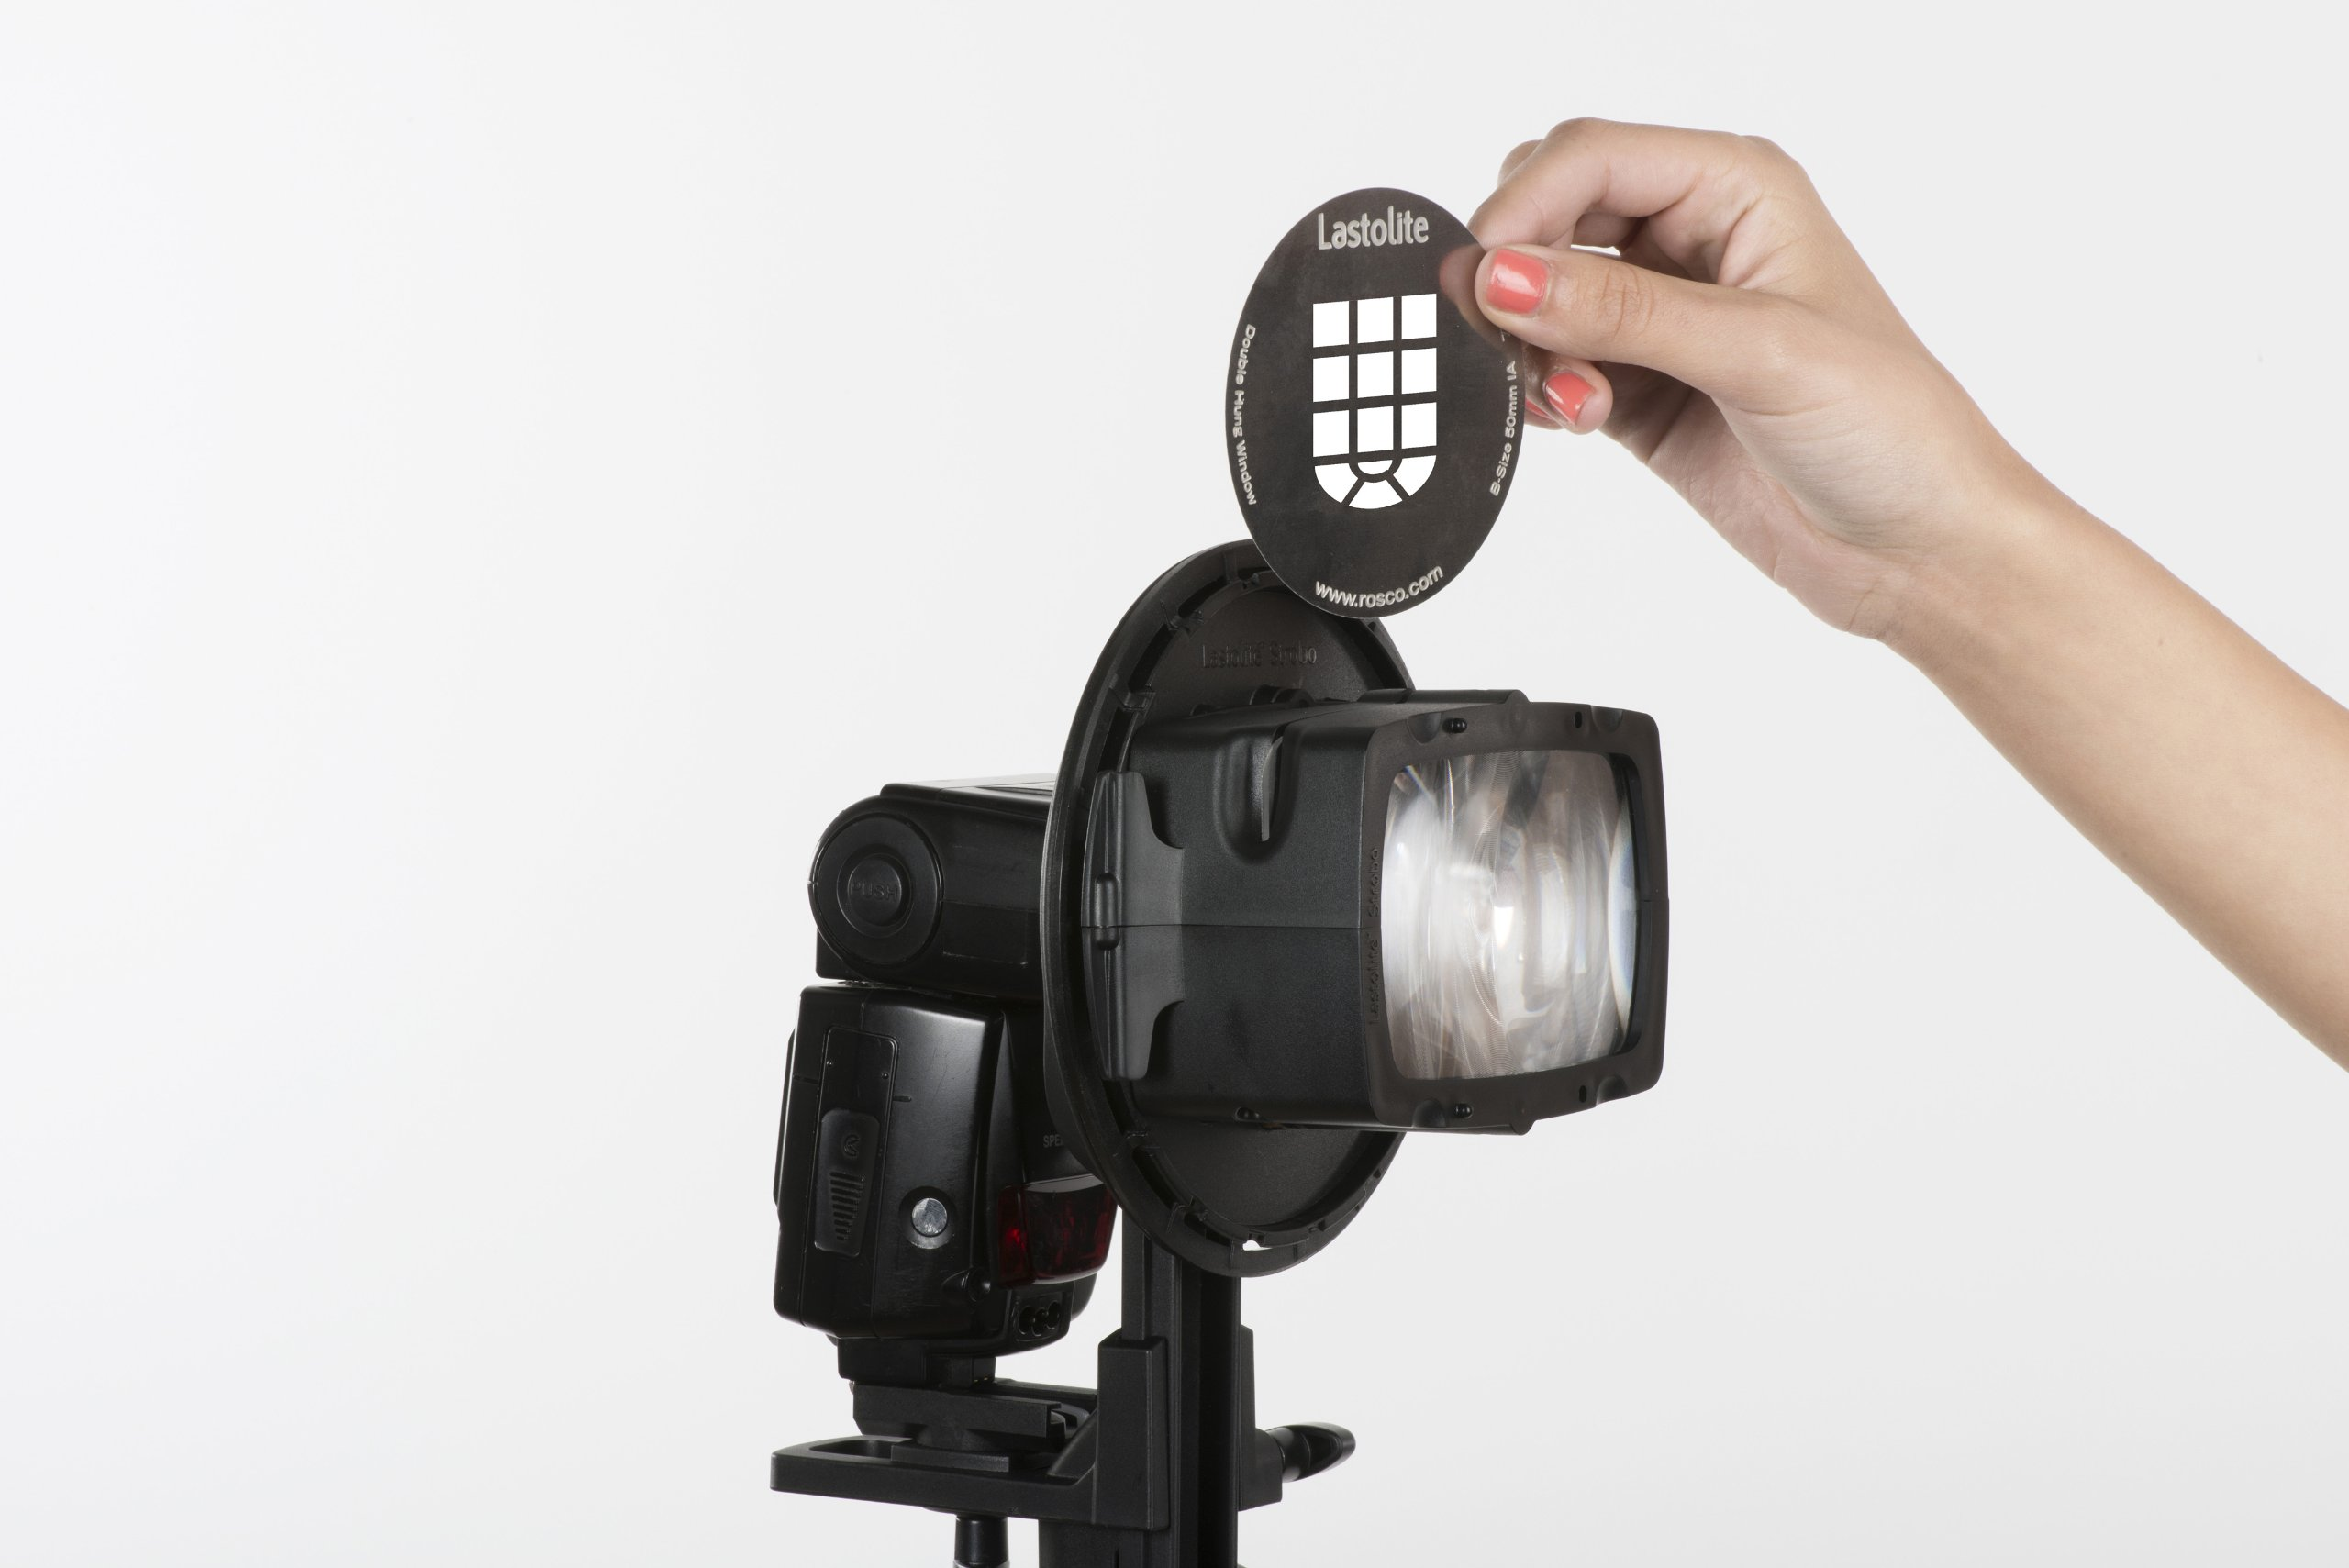 Lastolite Strobo GOBO Set by Manfrotto (Image #1)